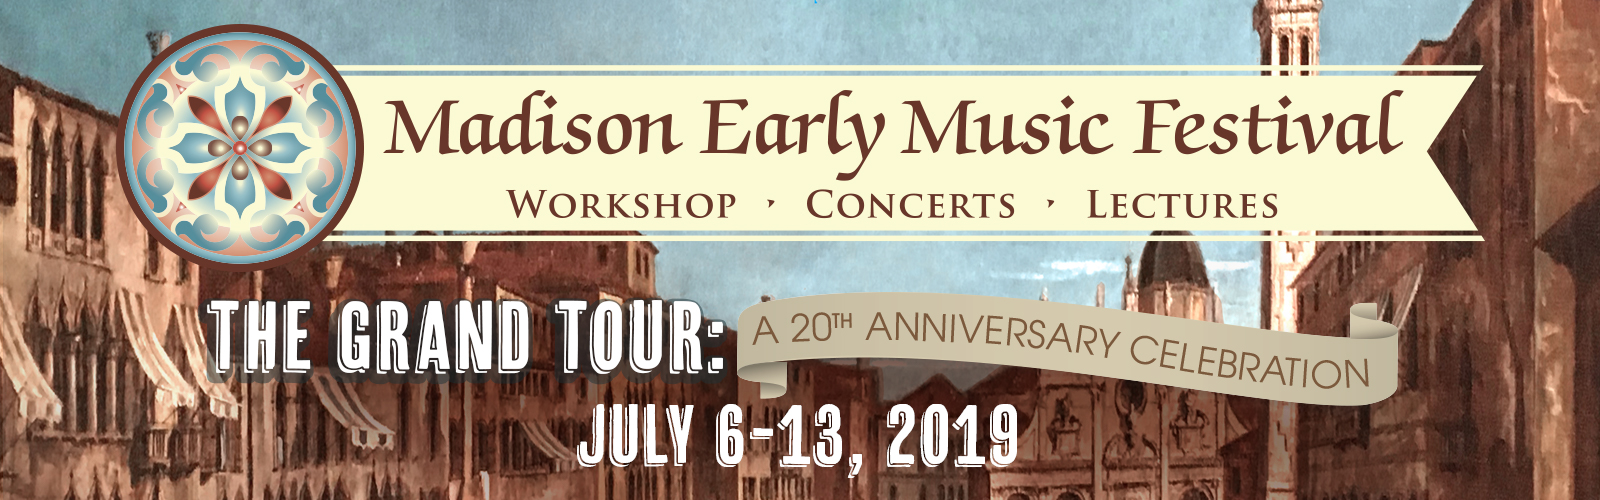 Madison Early Music Festival: Workshop, Concerts, Lectures. The Grand Tour: A 20th Anniversary Celebration July 6-13, 2019